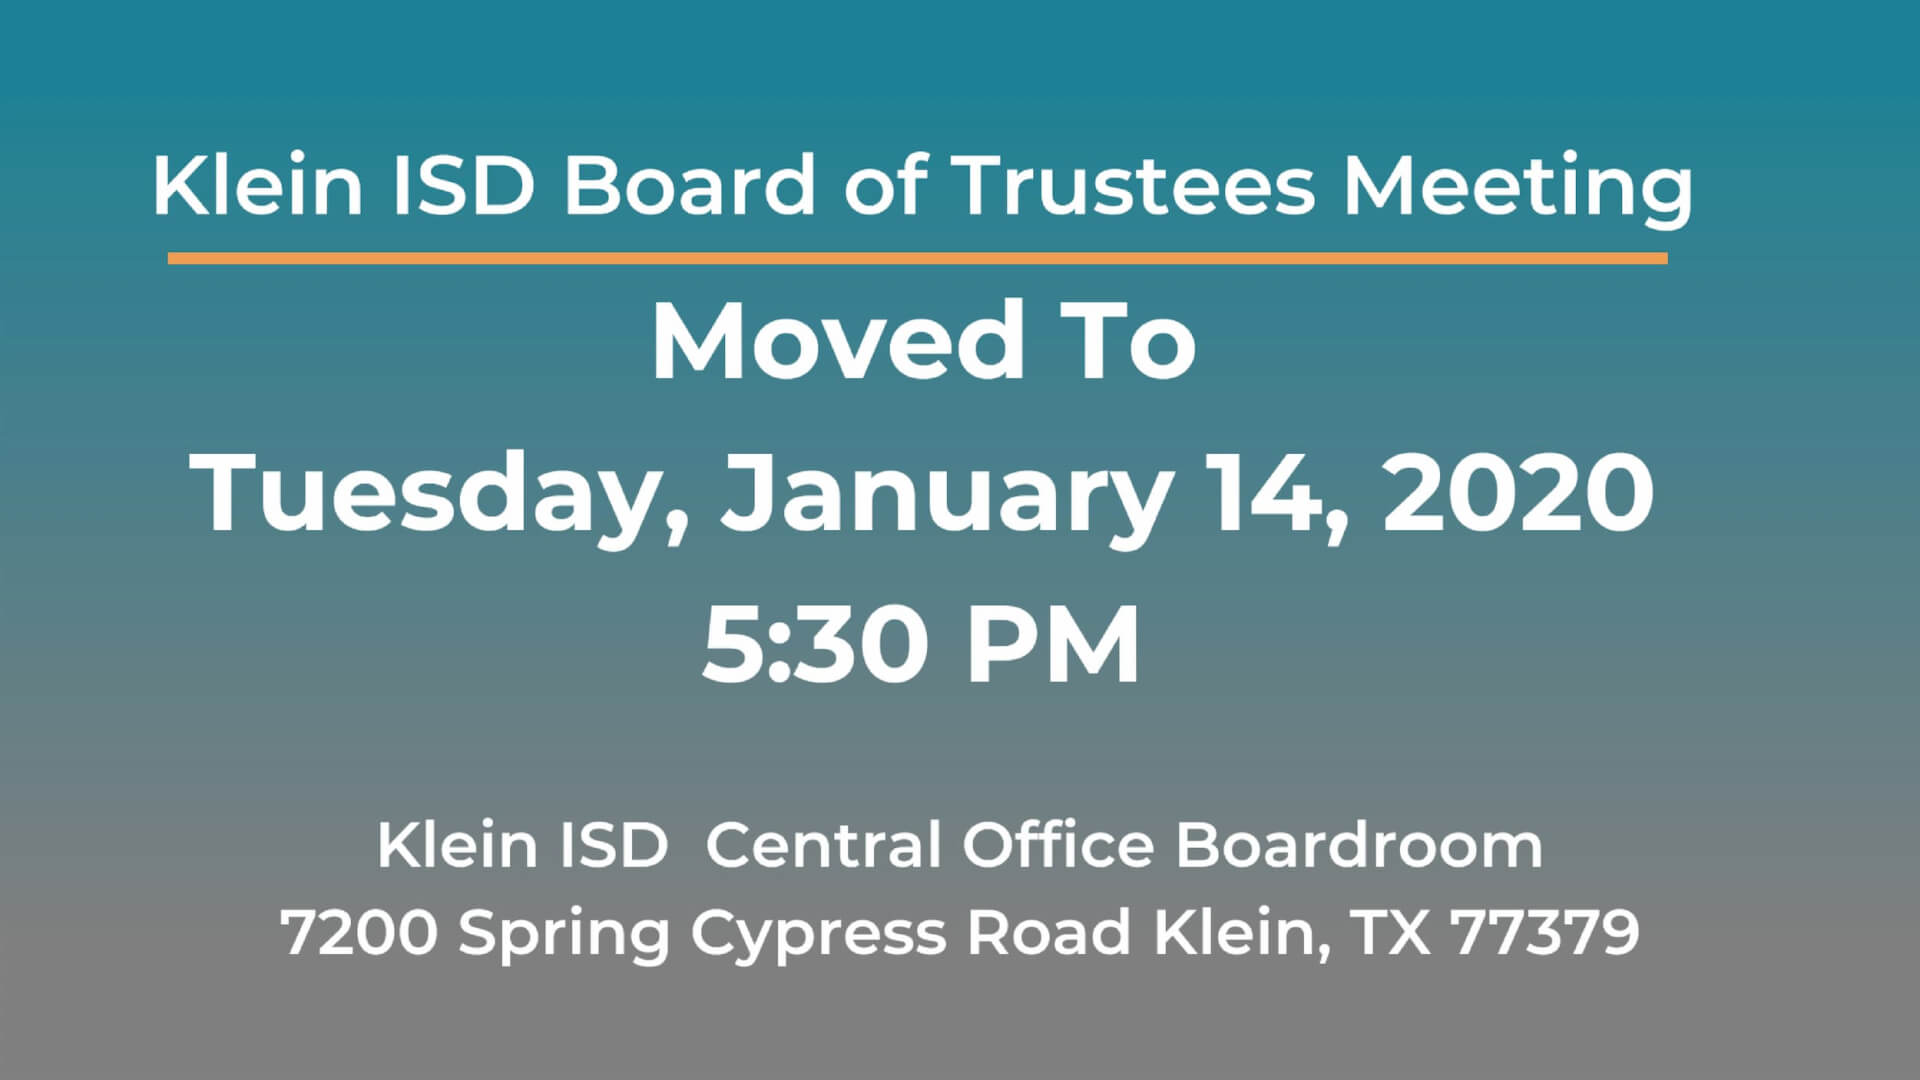 Klein ISD Board of Trustees Meeting Moved to January 14